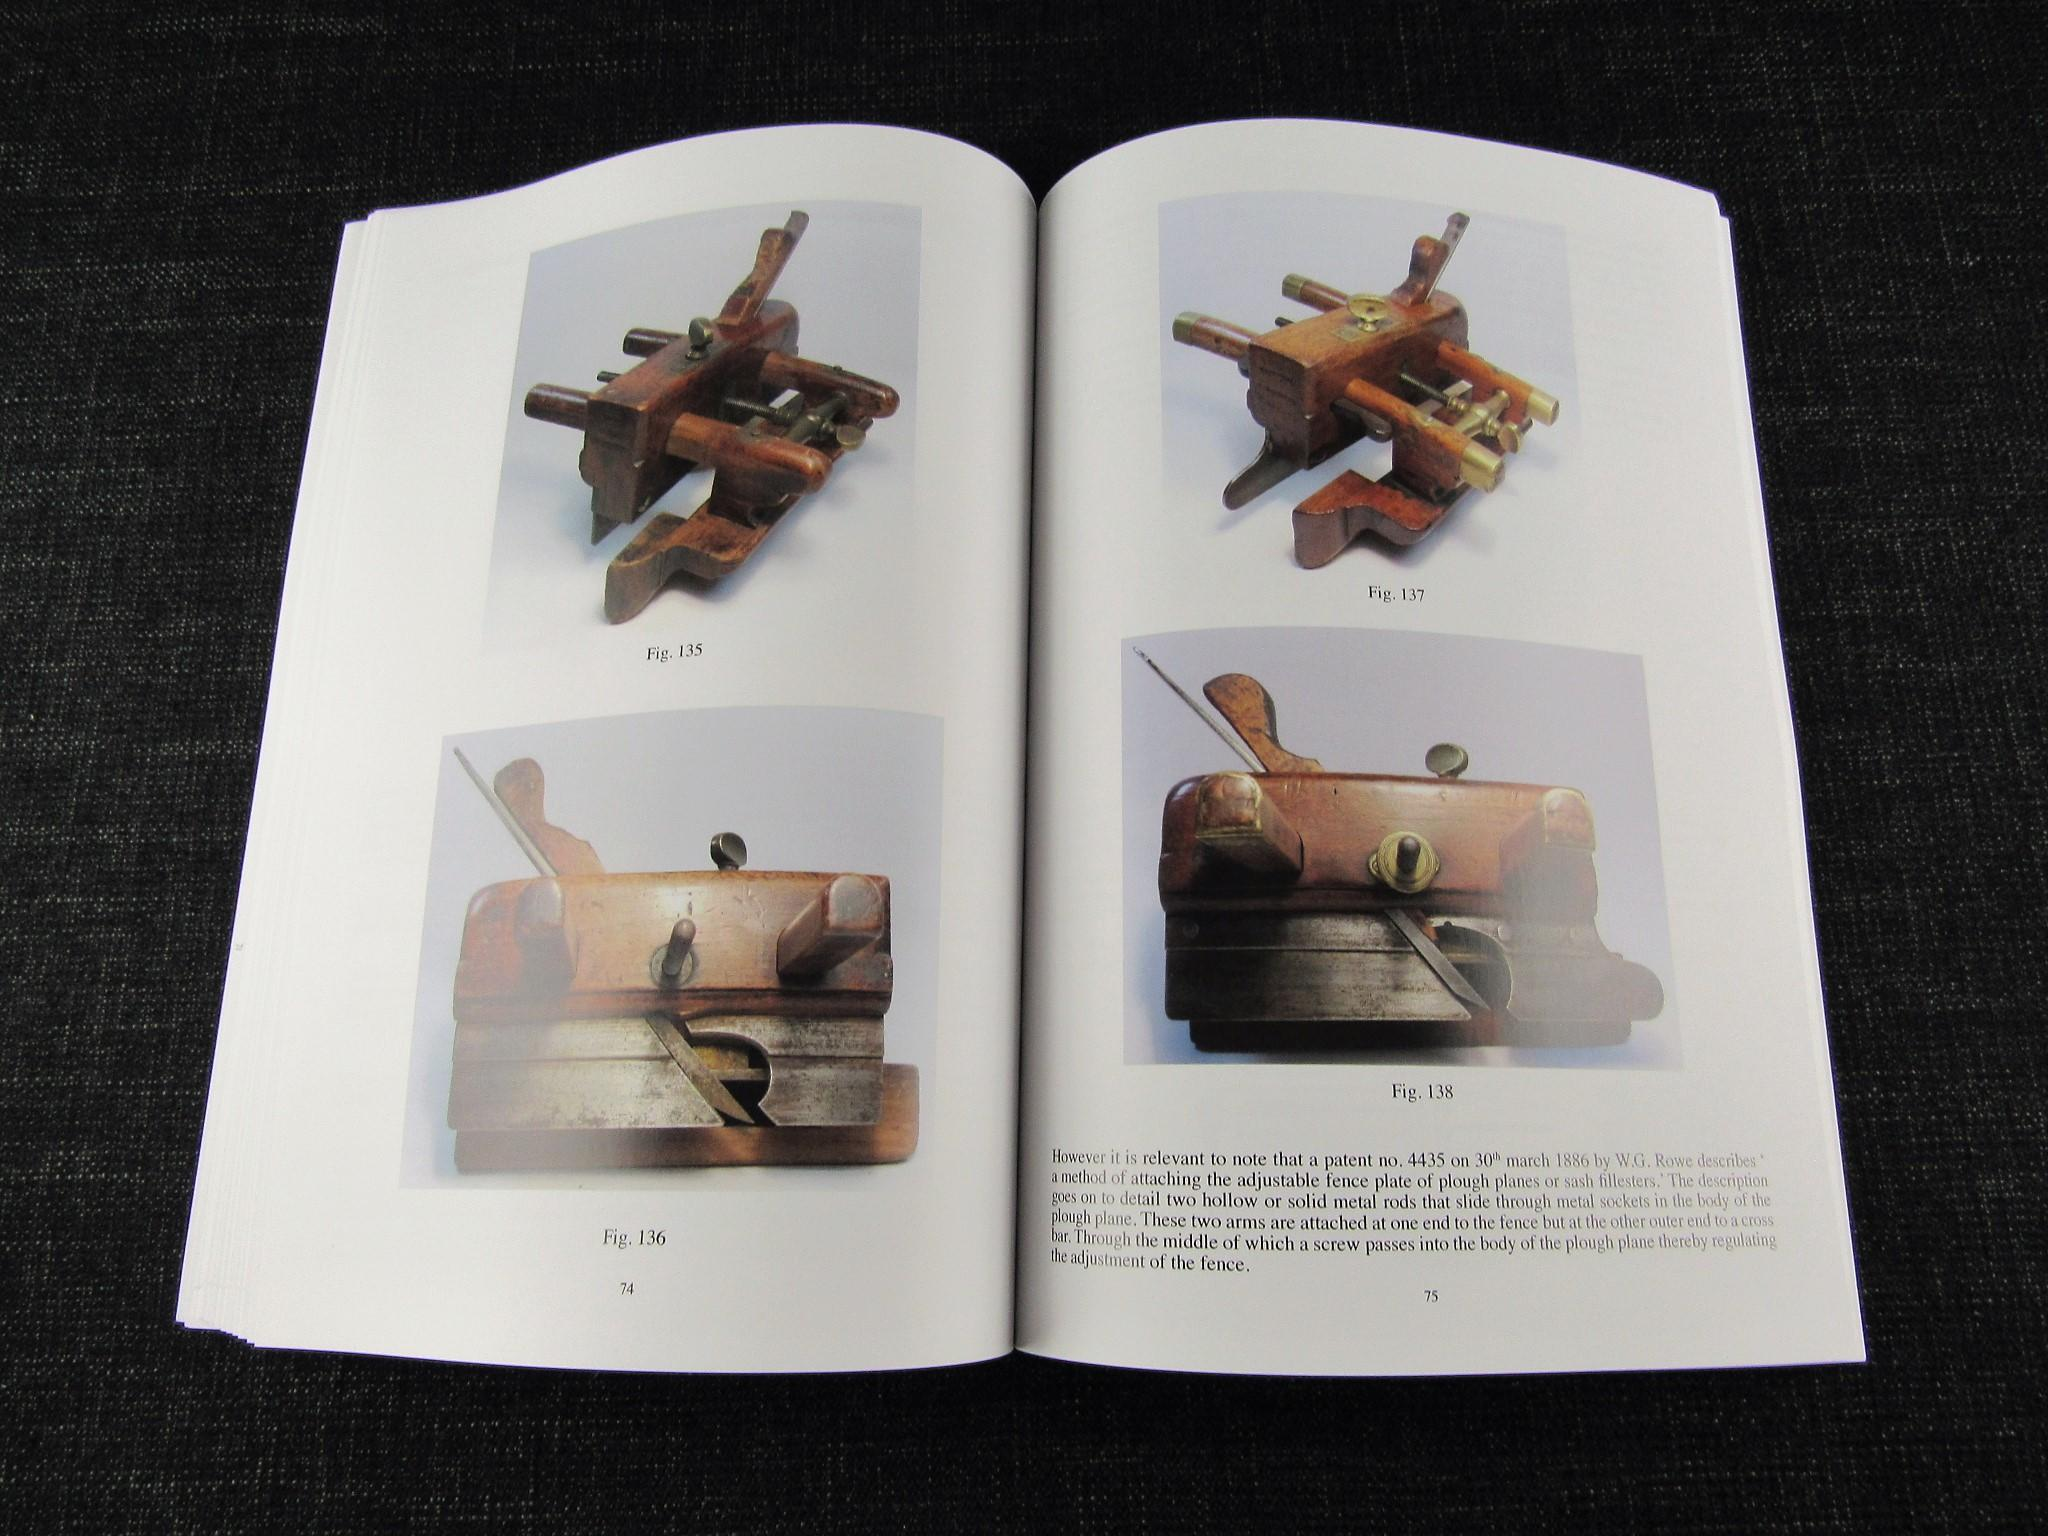 The Plough Plane - The Study of a Collection by David R Prichard